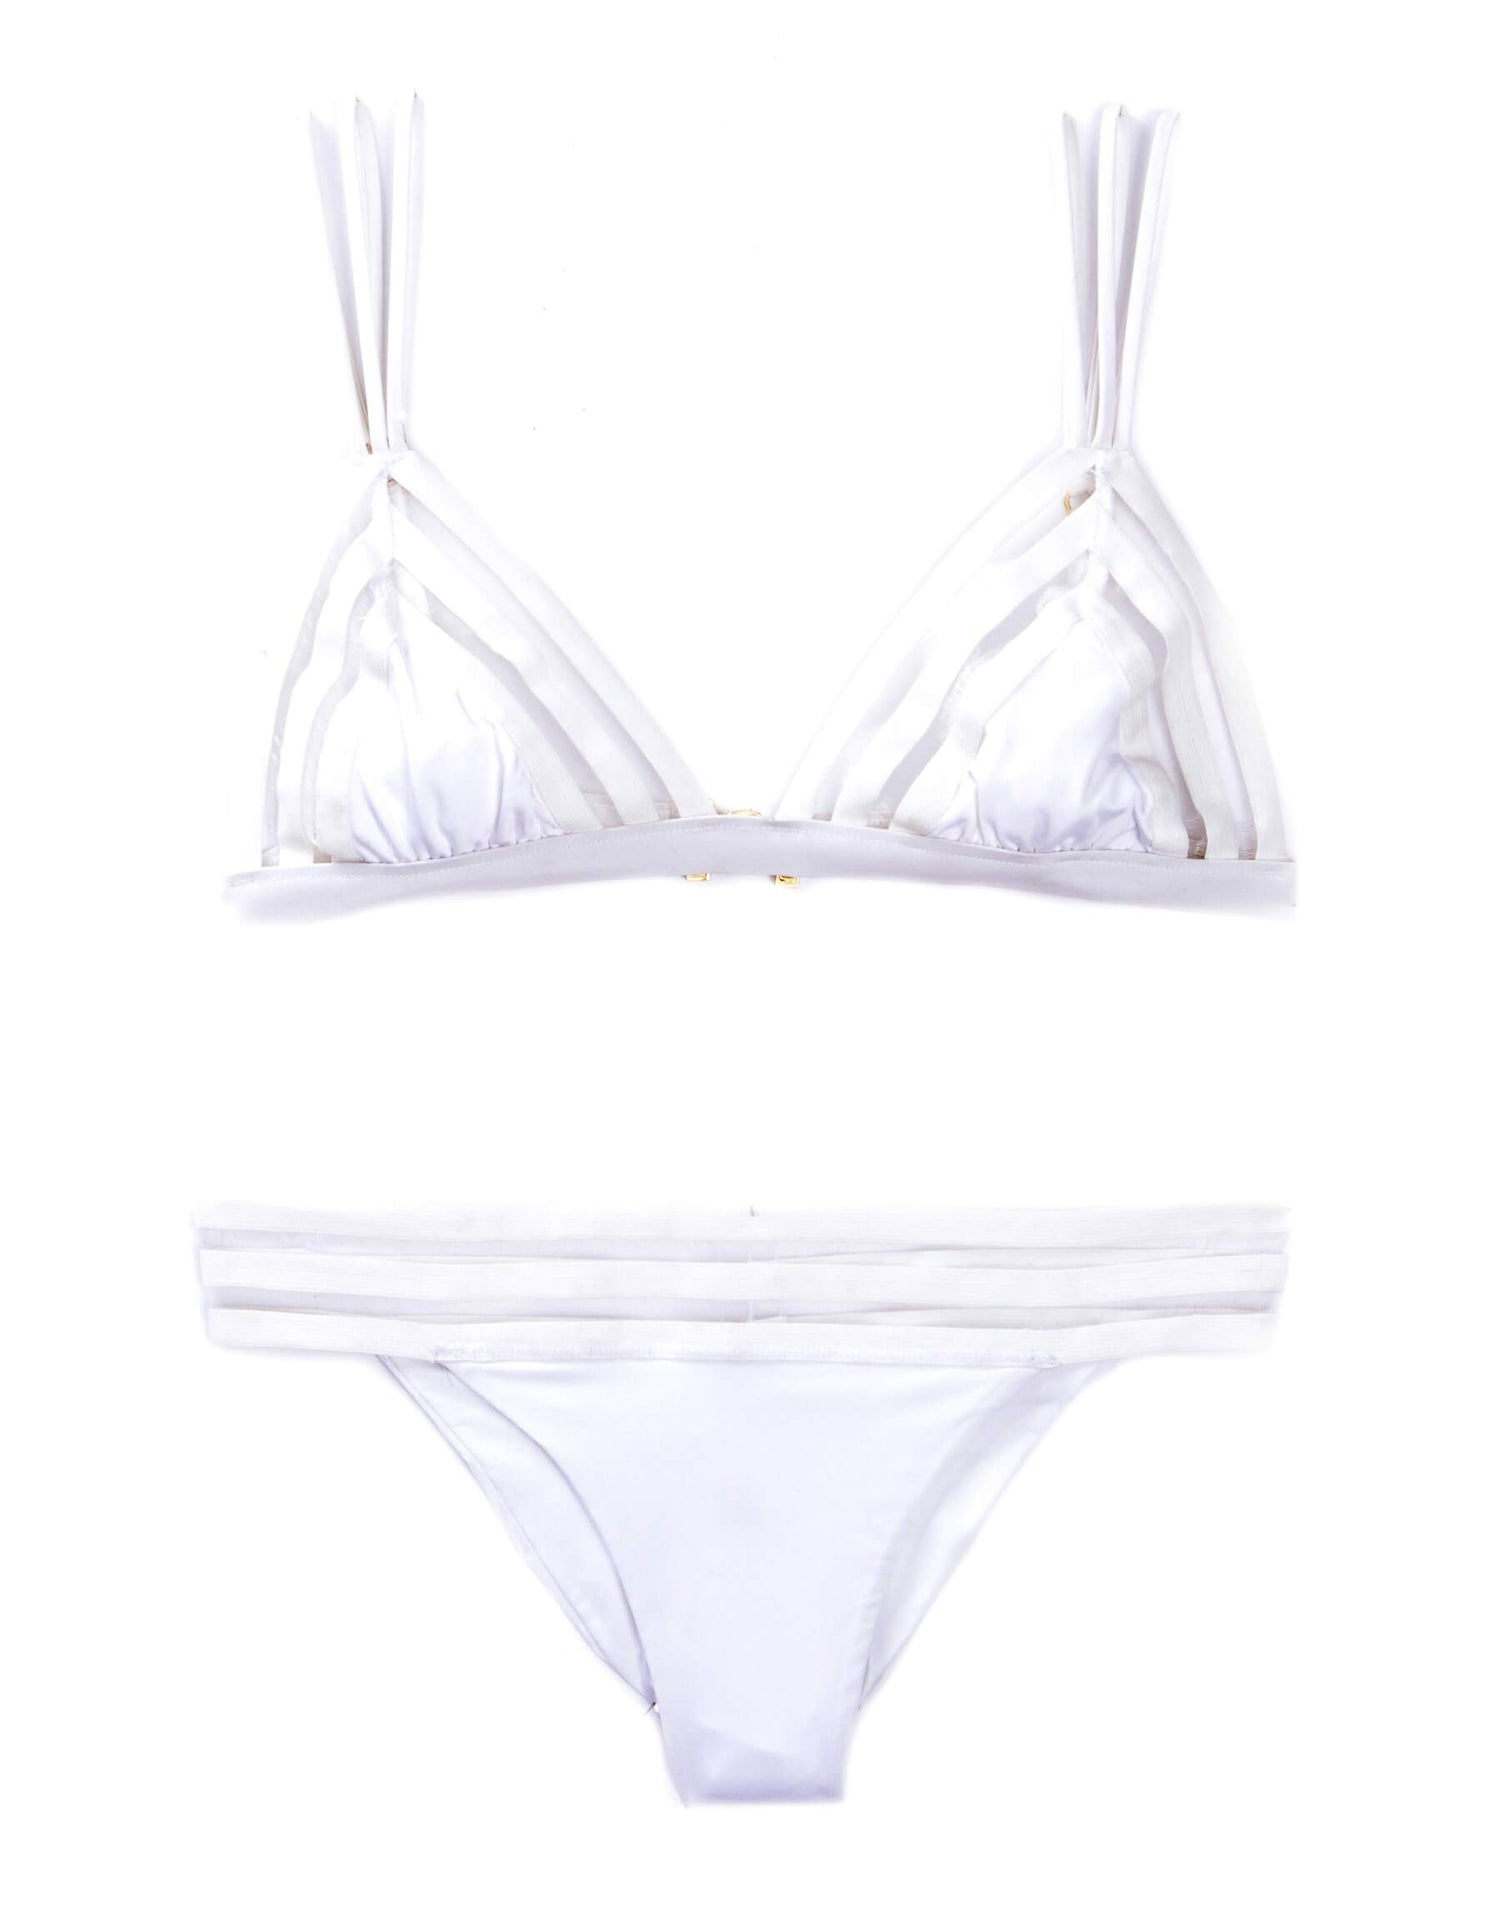 Sheer Addiction Skimpy Bikini Bottom in White with Sheer Elastic Stripe Band - product view